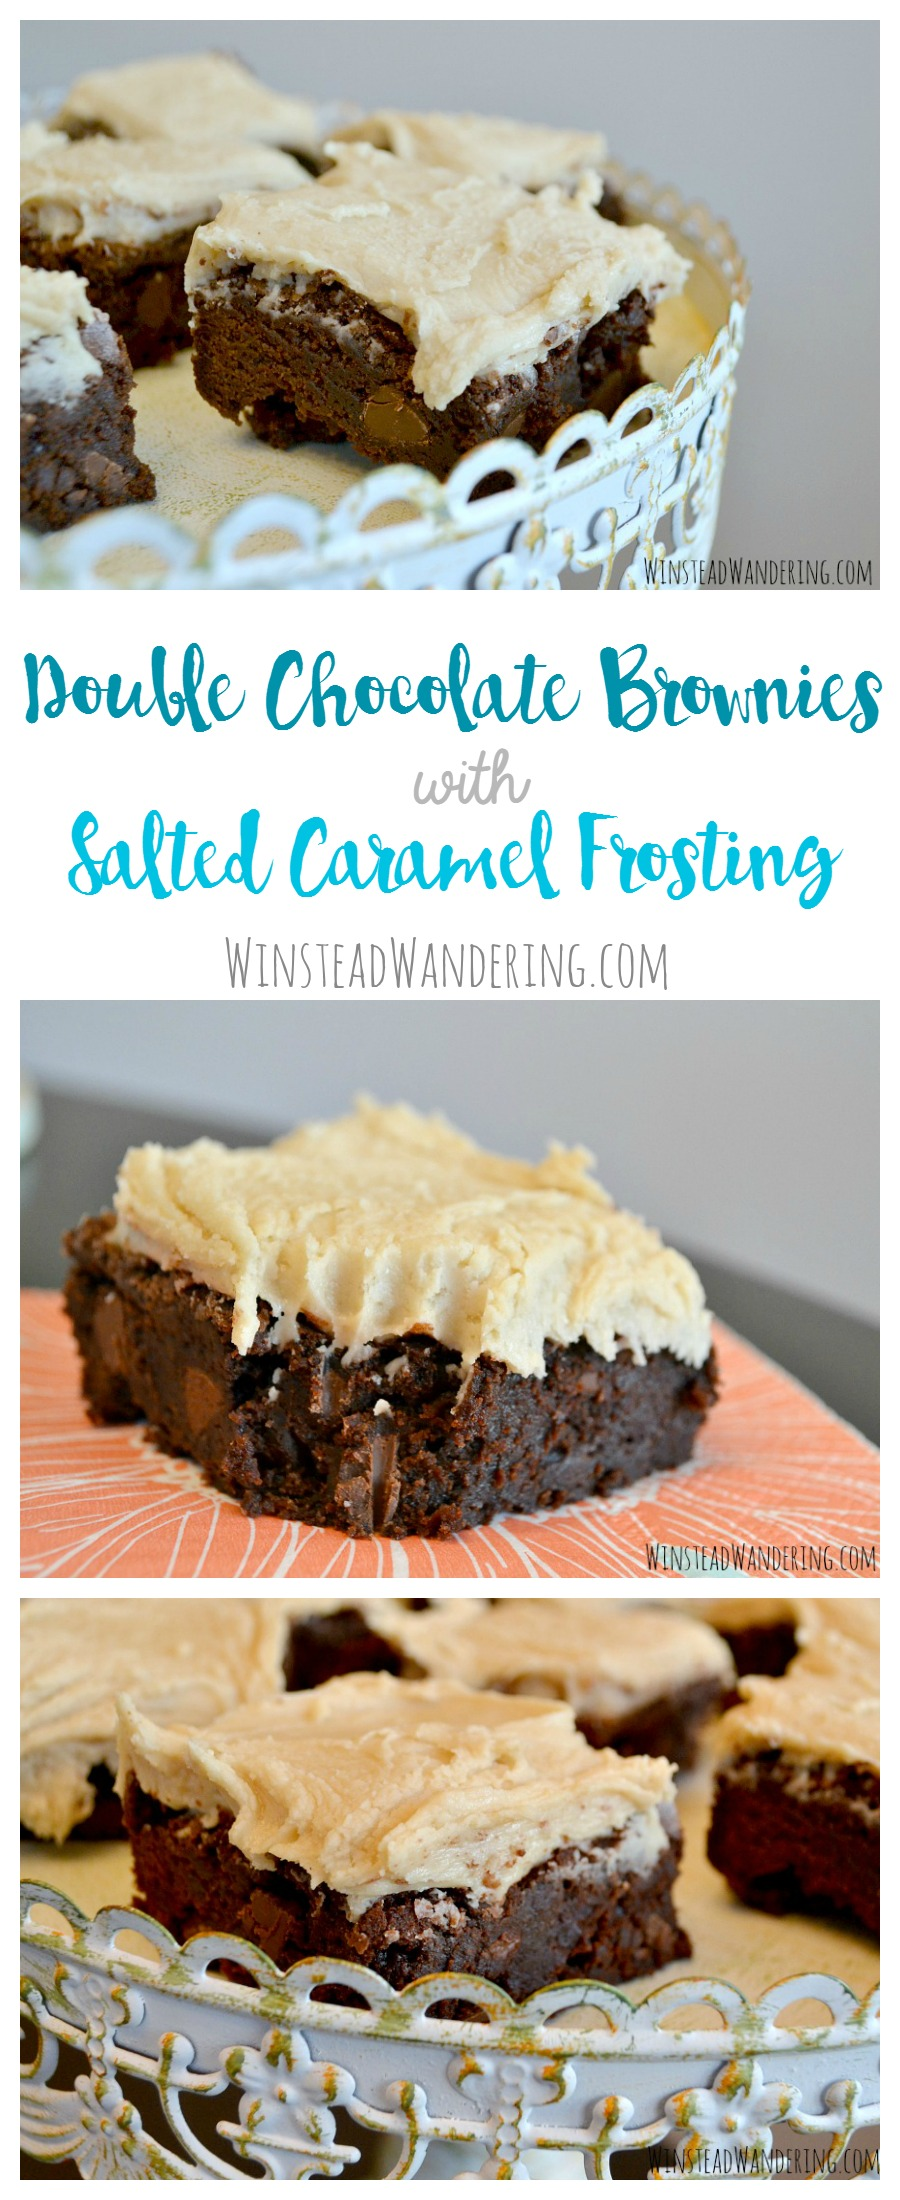 Double chocolate brownies with salted caramel frosting are a rich, decadent homemade treat that's perfect for an indulgent dessert or weekend gathering.